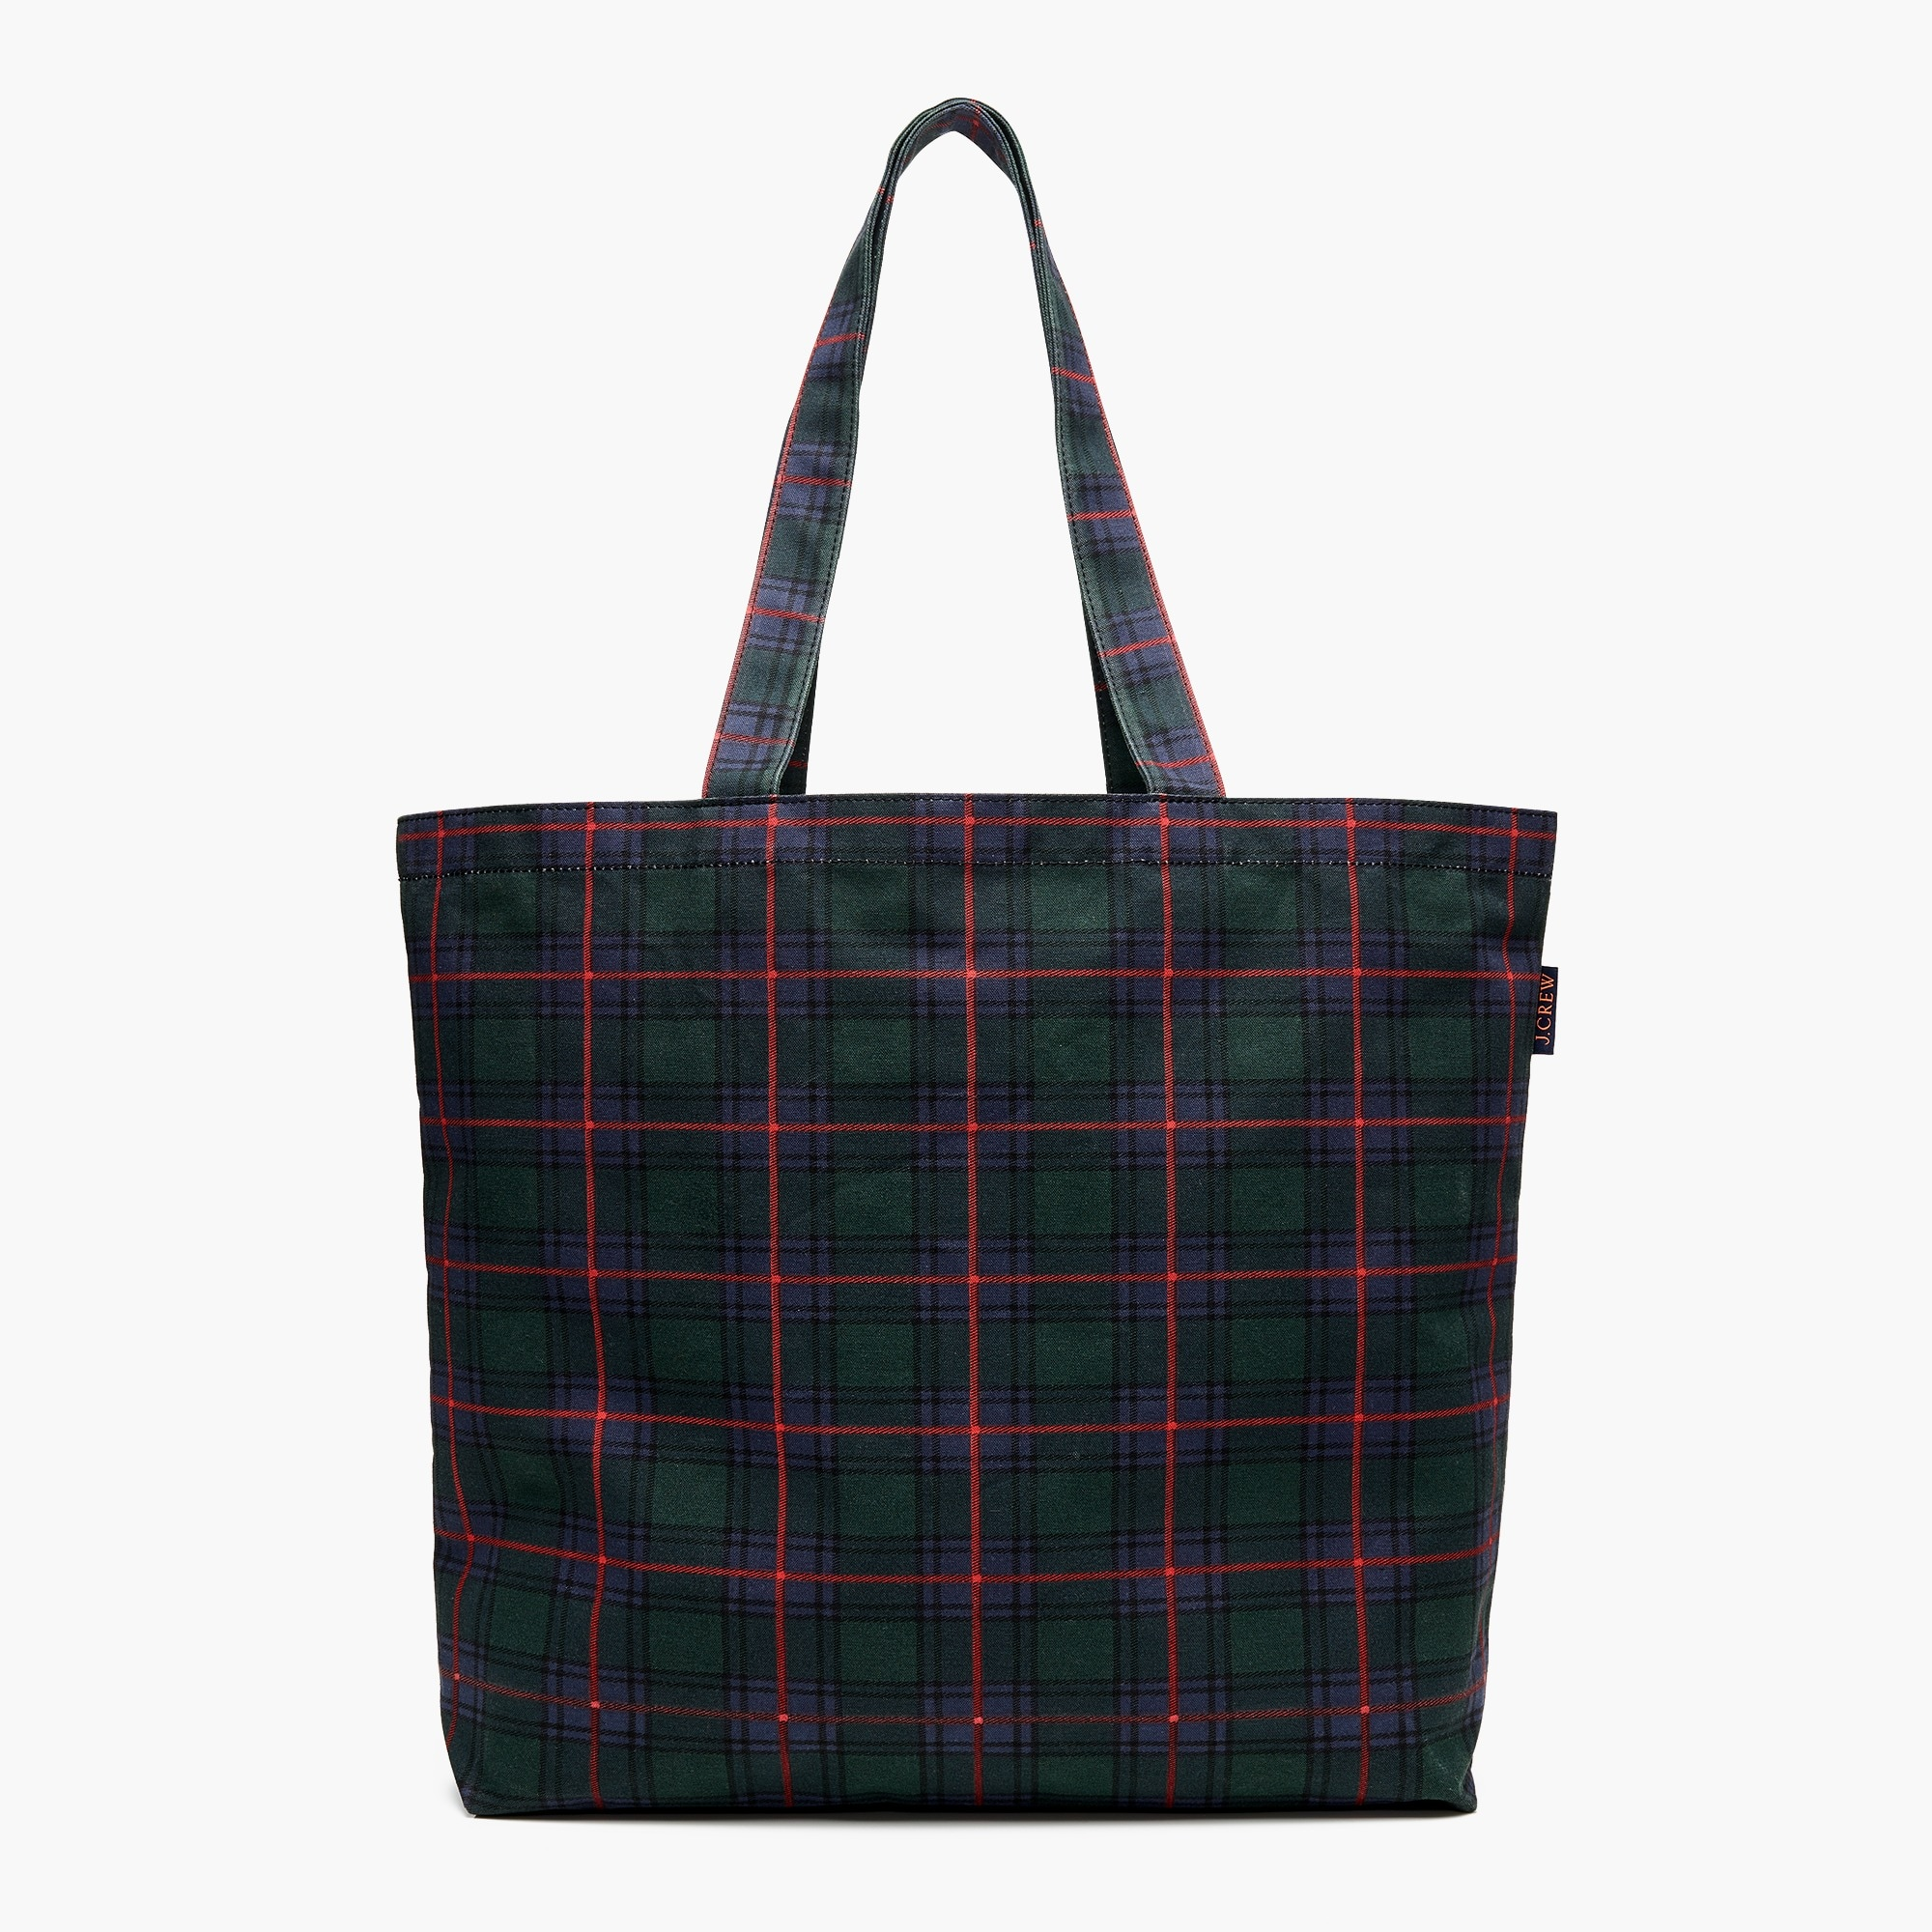 womens Large reusable everyday tote in blackwatch plaid